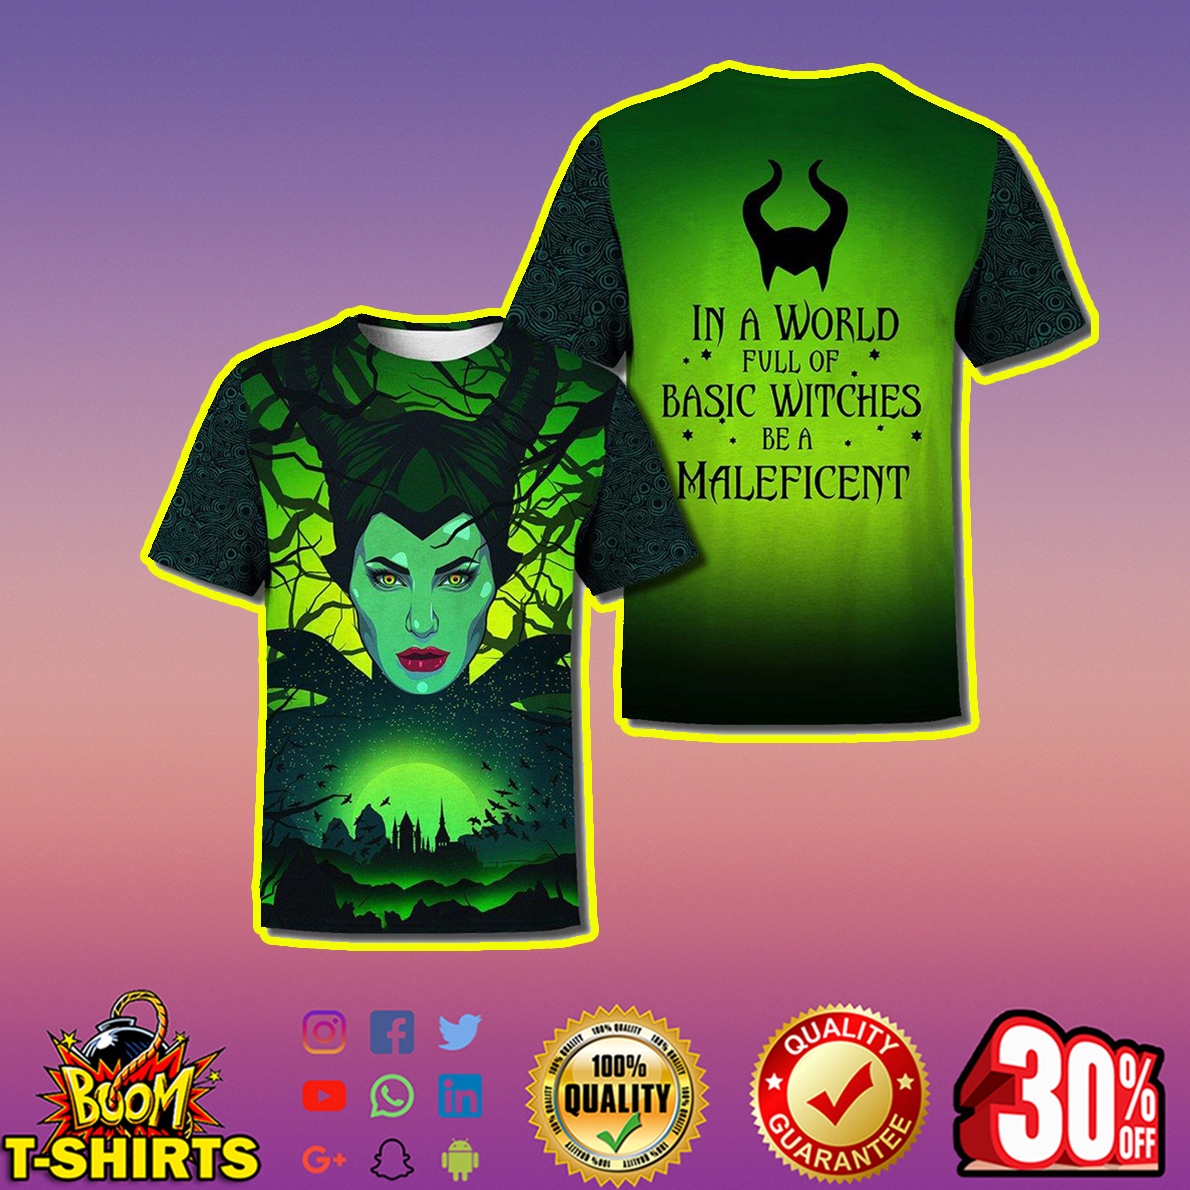 In a world full of basic witches be a Maleficent 3d print t-shirt